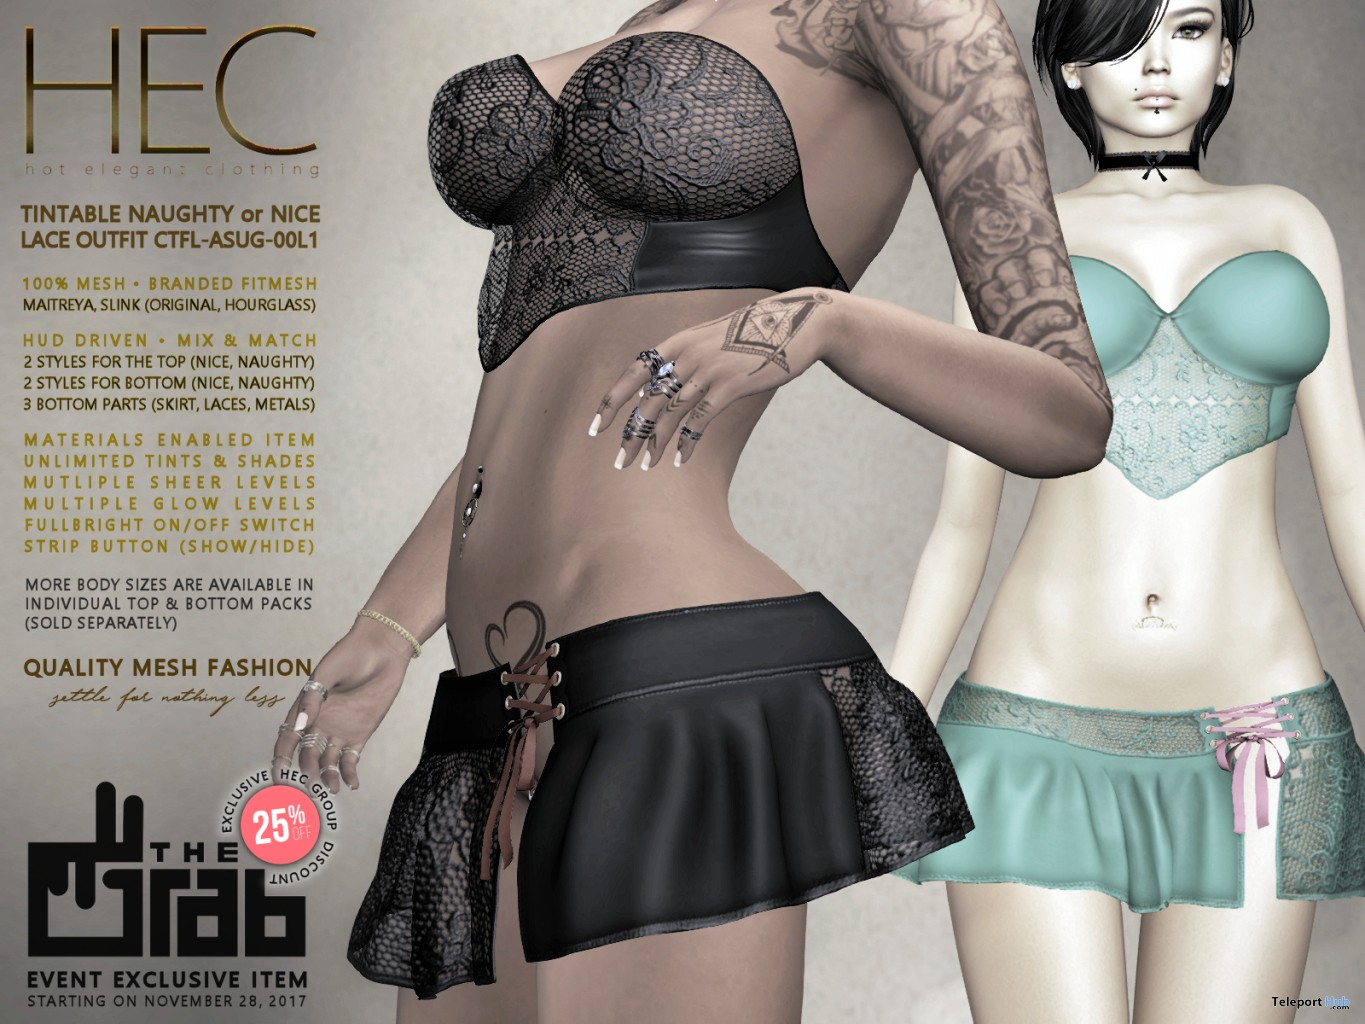 Naughty or Nice Lace Outfit 25% Off Group Discount Promo by HEC @ The Grab December 2017 - Teleport Hub - teleporthub.com